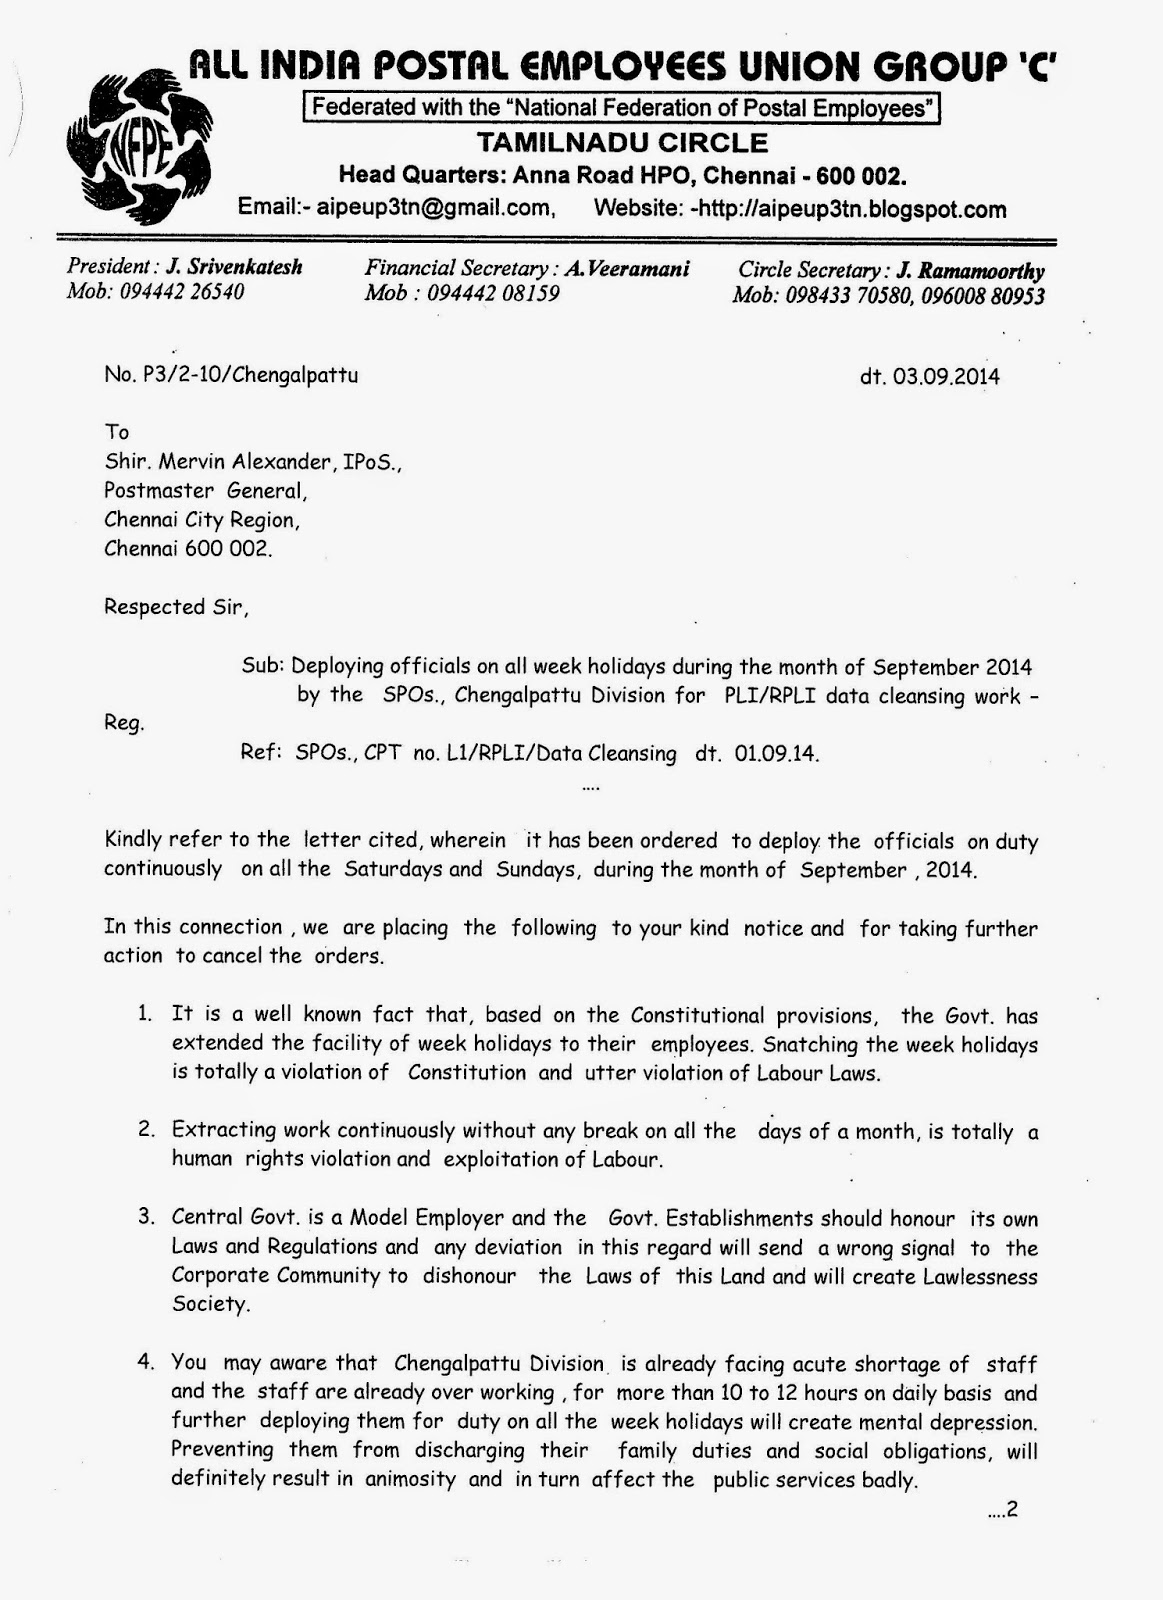 Aipeup3tn circle union letter to pmg ccr on deploying employees spiritdancerdesigns Image collections